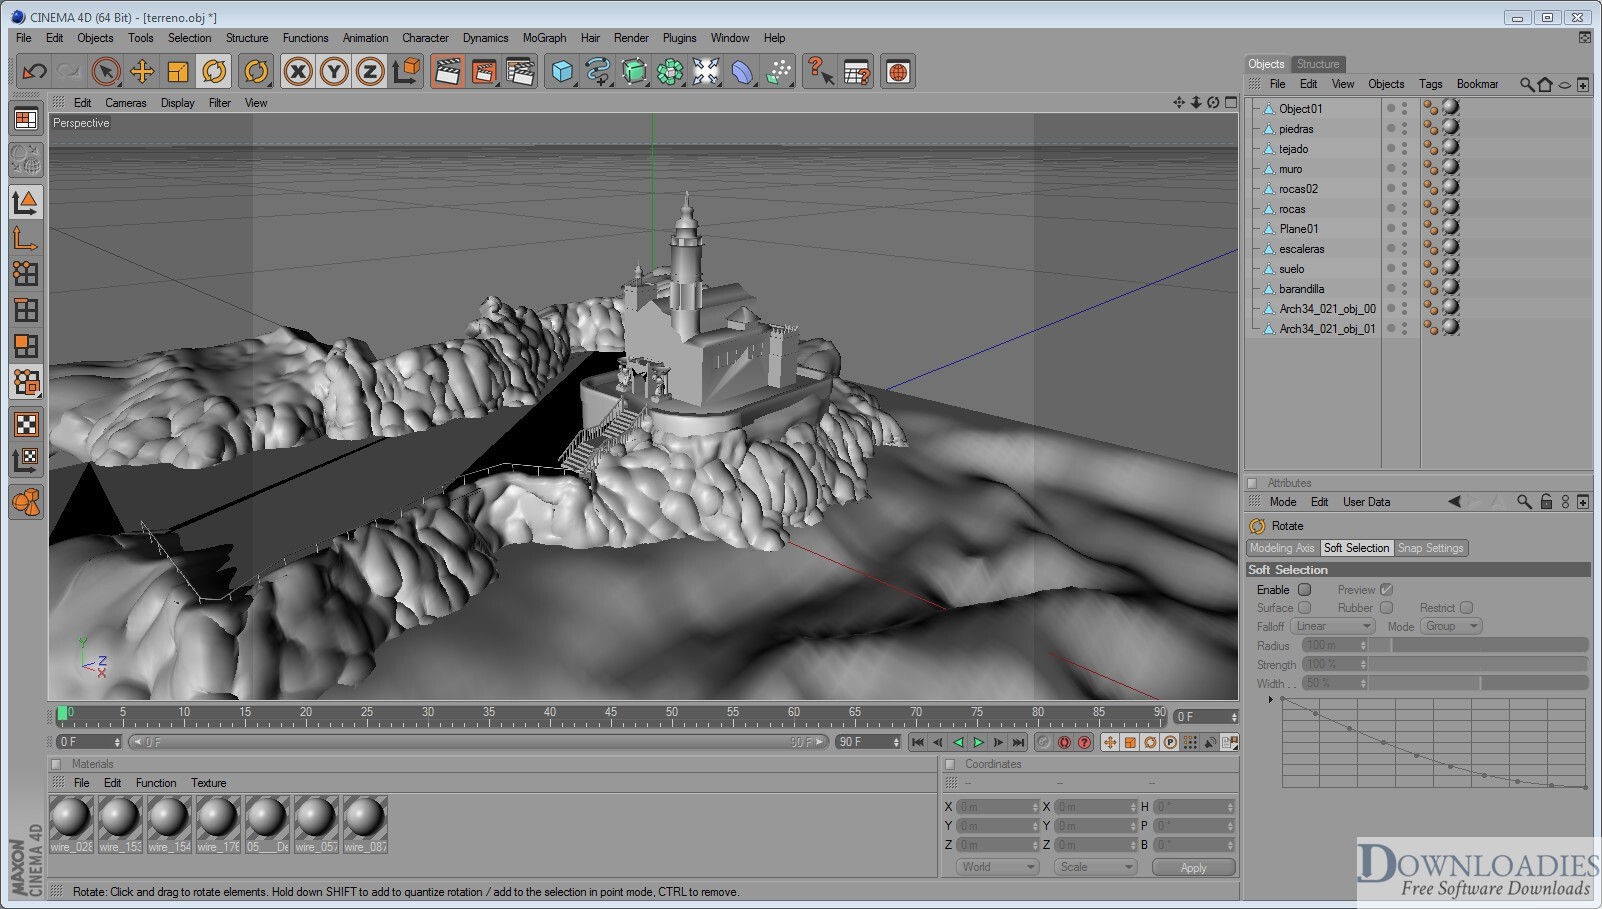 Download RealFlow Cinema 4D 2.0.1 for Mac Free